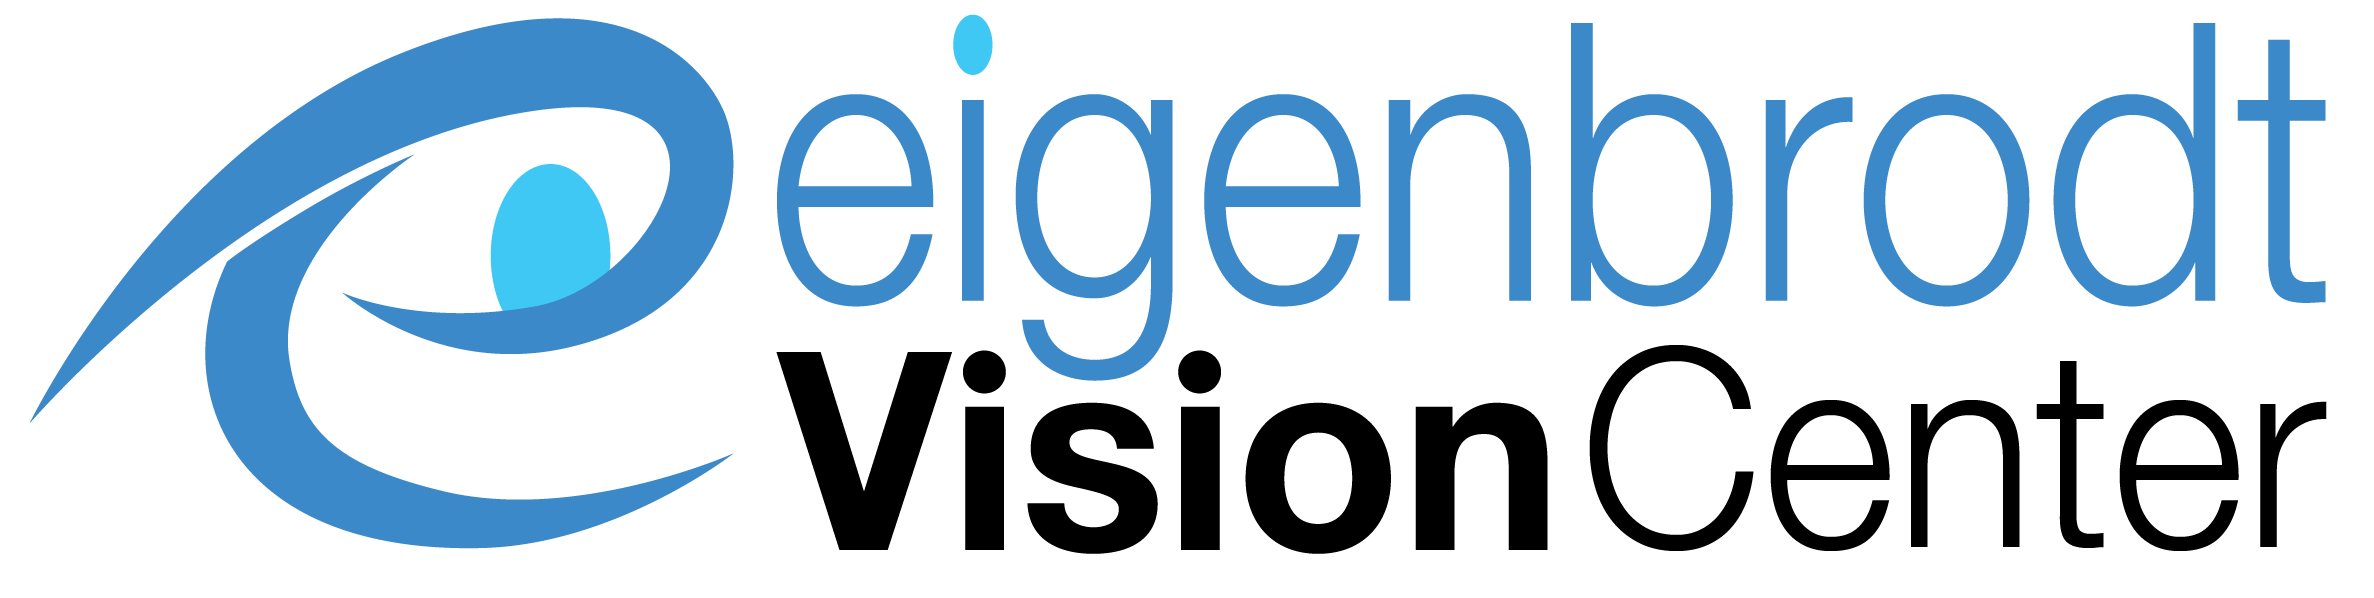 Eigenbrodt Vision Center